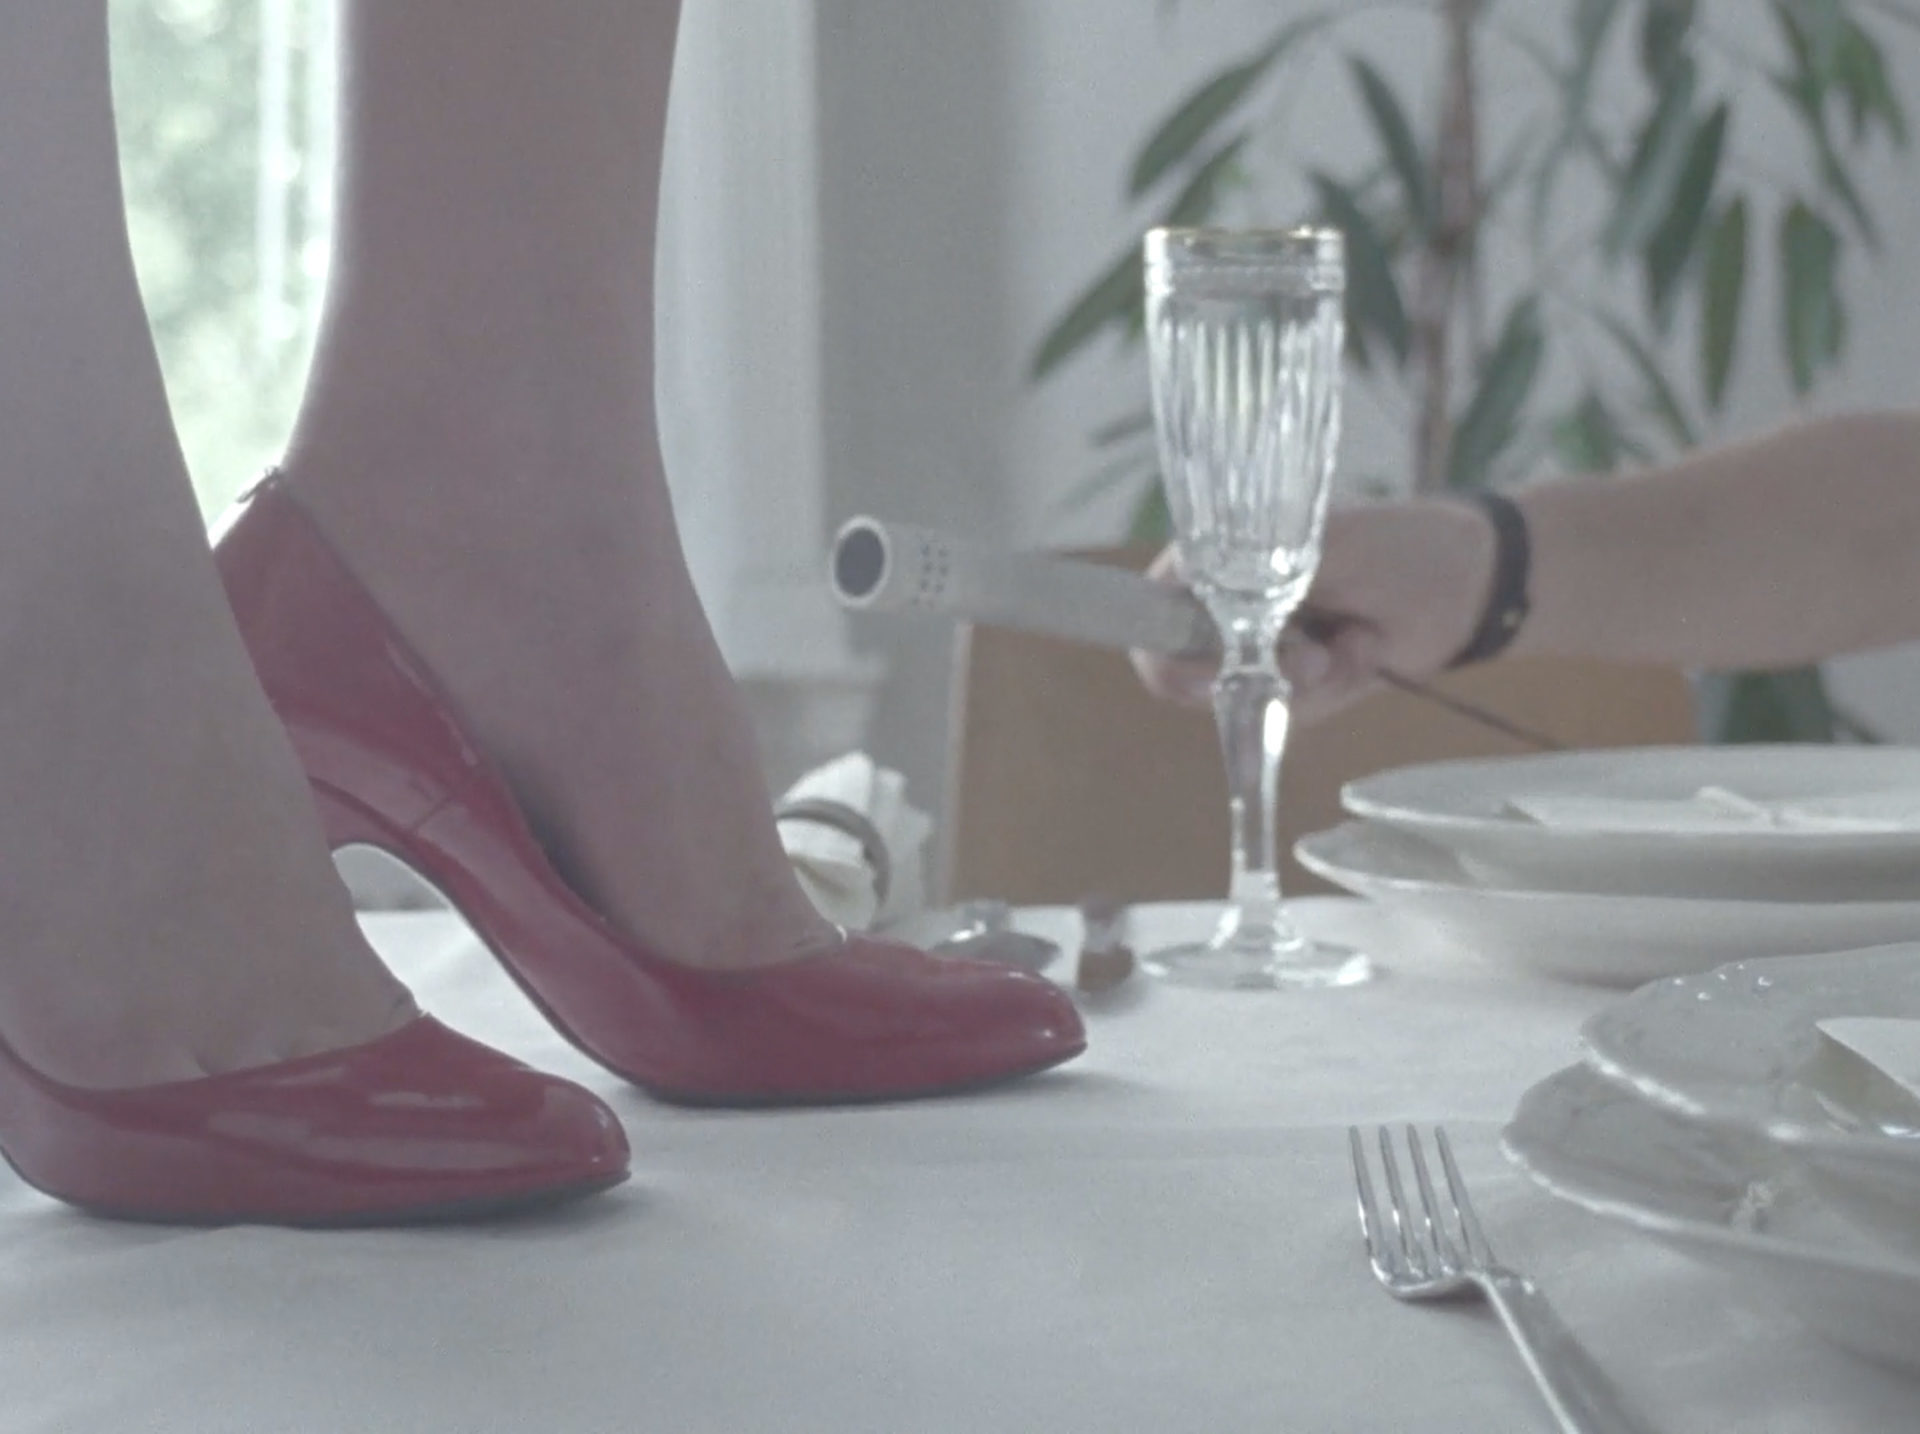 NOWNESS2